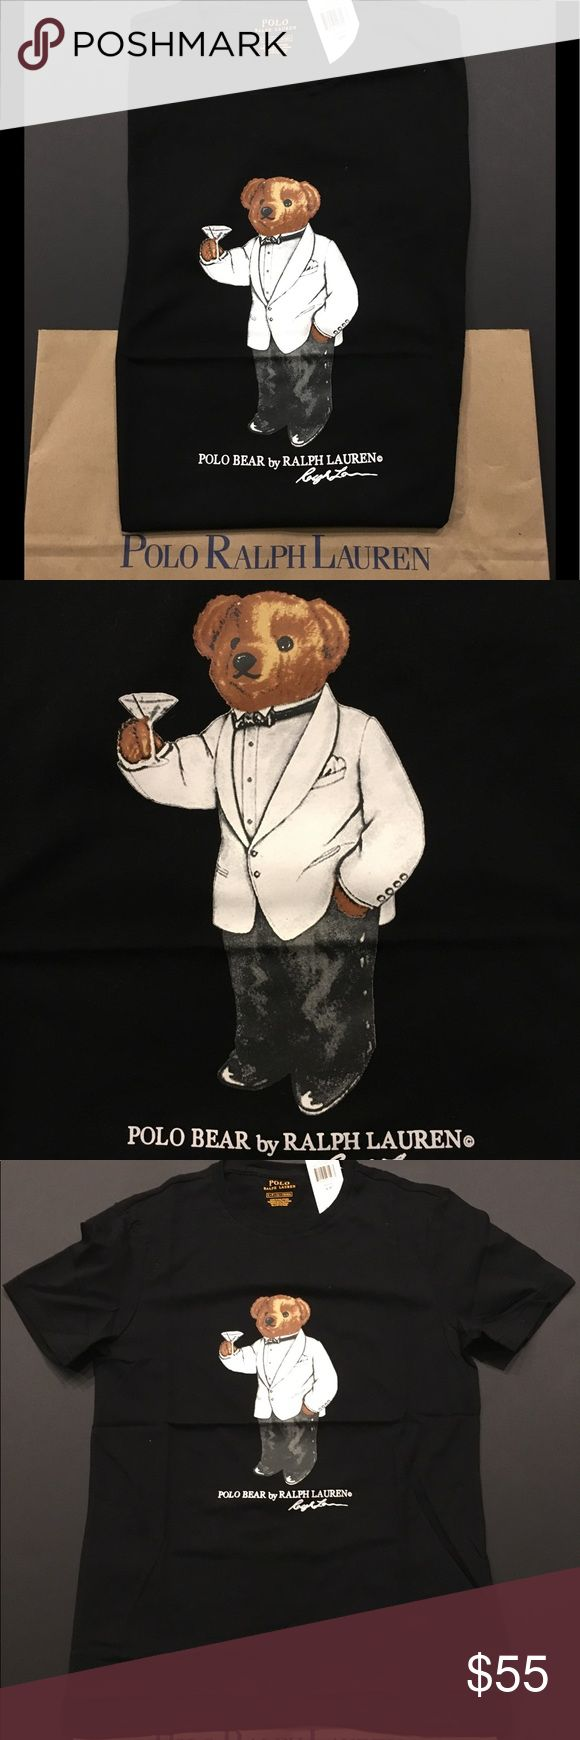 Ralph Lauren Polo Bear Tuxedo Wine Bear PRICE IS FIRM  Up for sale is one Brand New Men's Polo Ralph Lauren Polo Bear Tuxedo Martini Bear T-Shirt, Item comes brand new with tags!  100% Authentic Polo Ralph Lauren  Polo Bear Logo on Front  Black  100% Cotton  FAST SHIPPING Polo by Ralph Lauren Shirts Tees - Short Sleeve